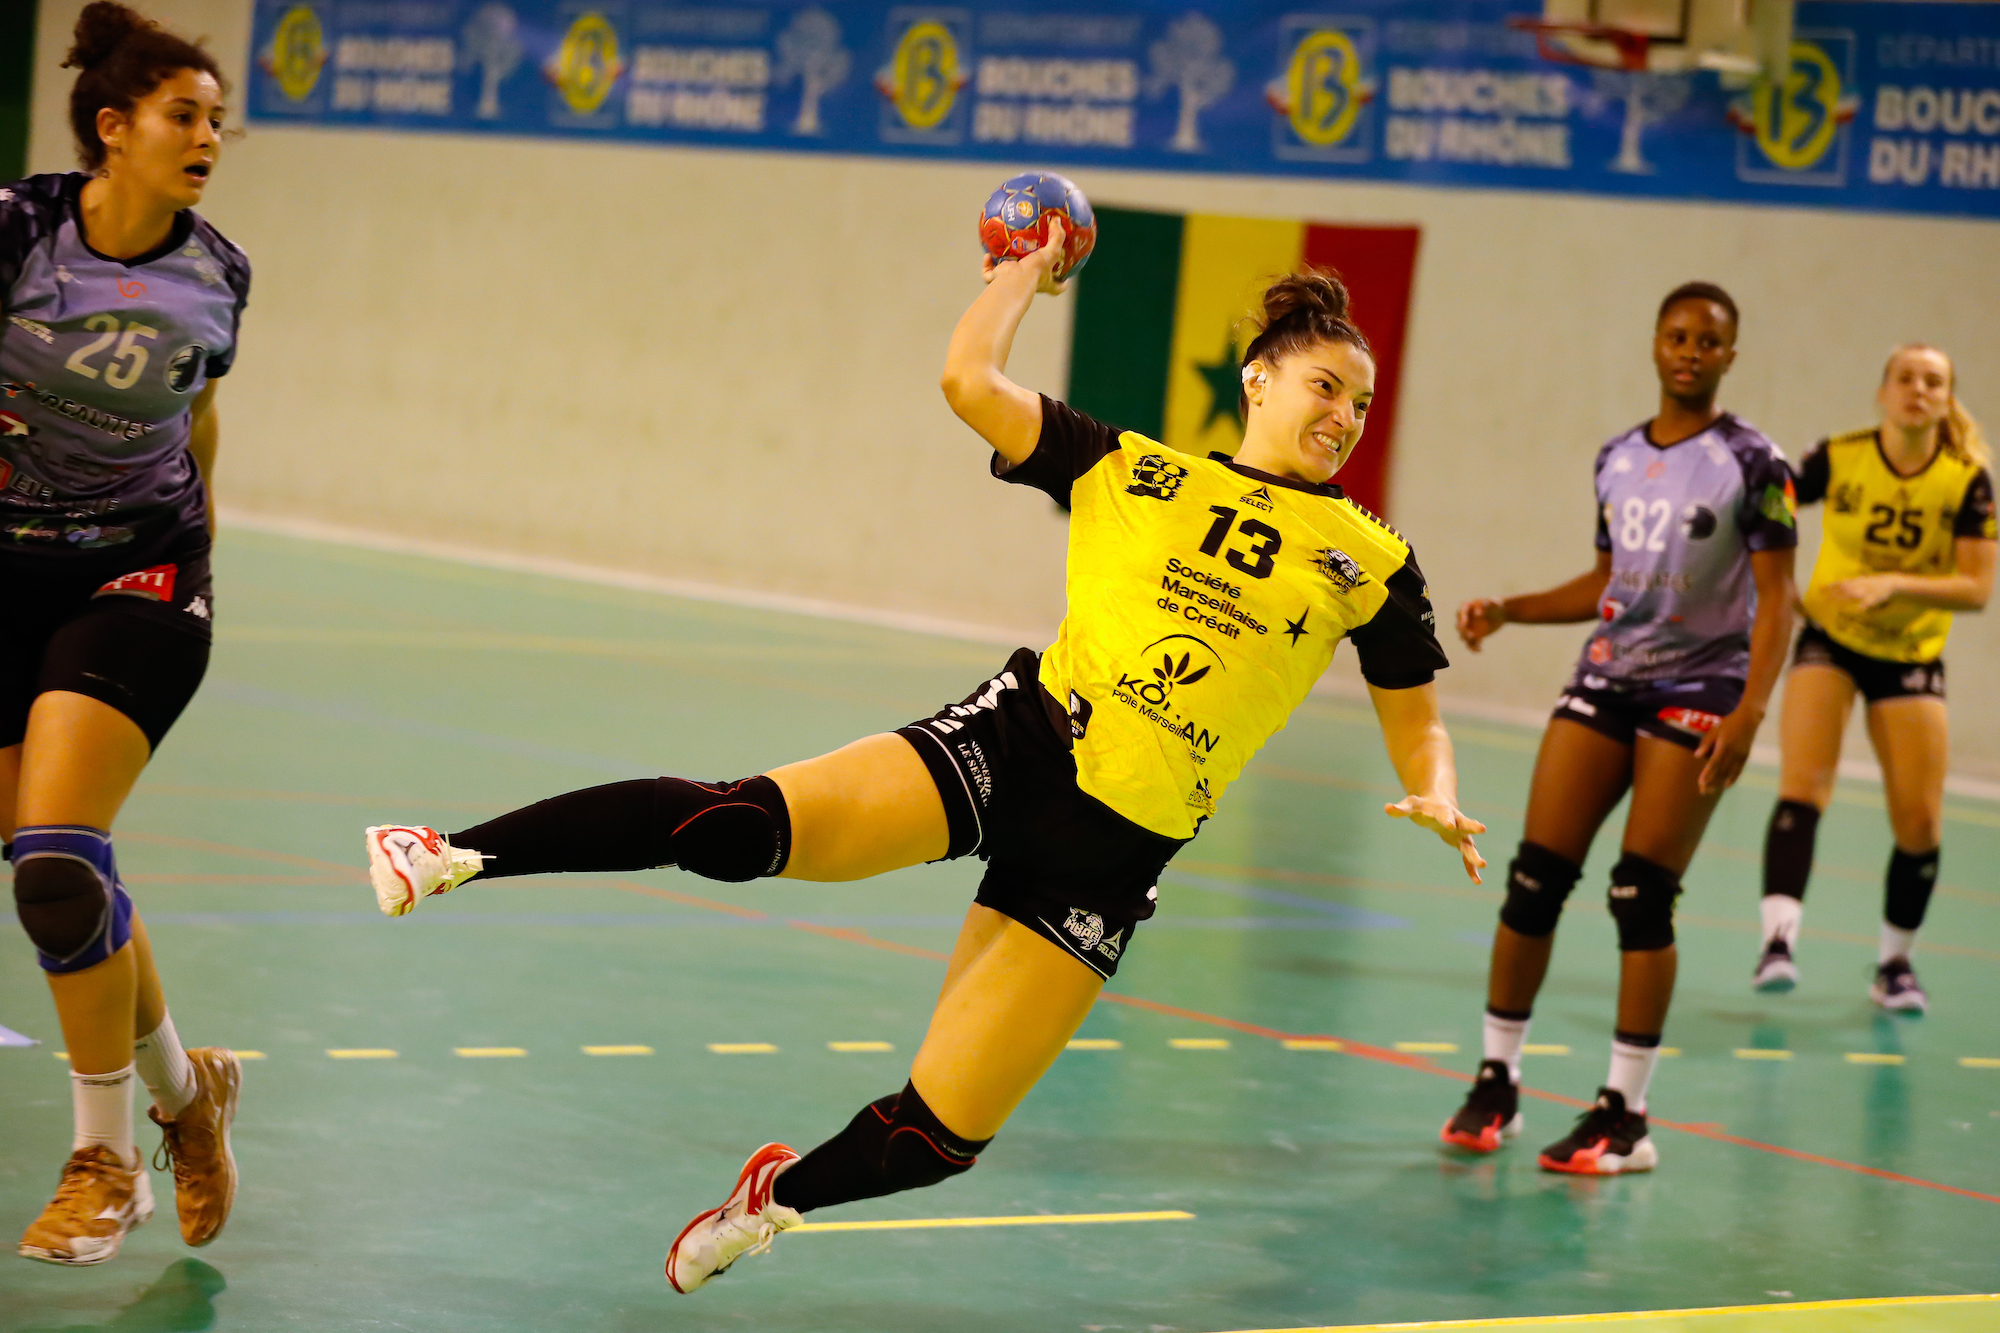 HANDBALL : HBPC Plan de Cuques Vs Chambray Touraine Handball - Femina Hand Cup - 19/12/2020